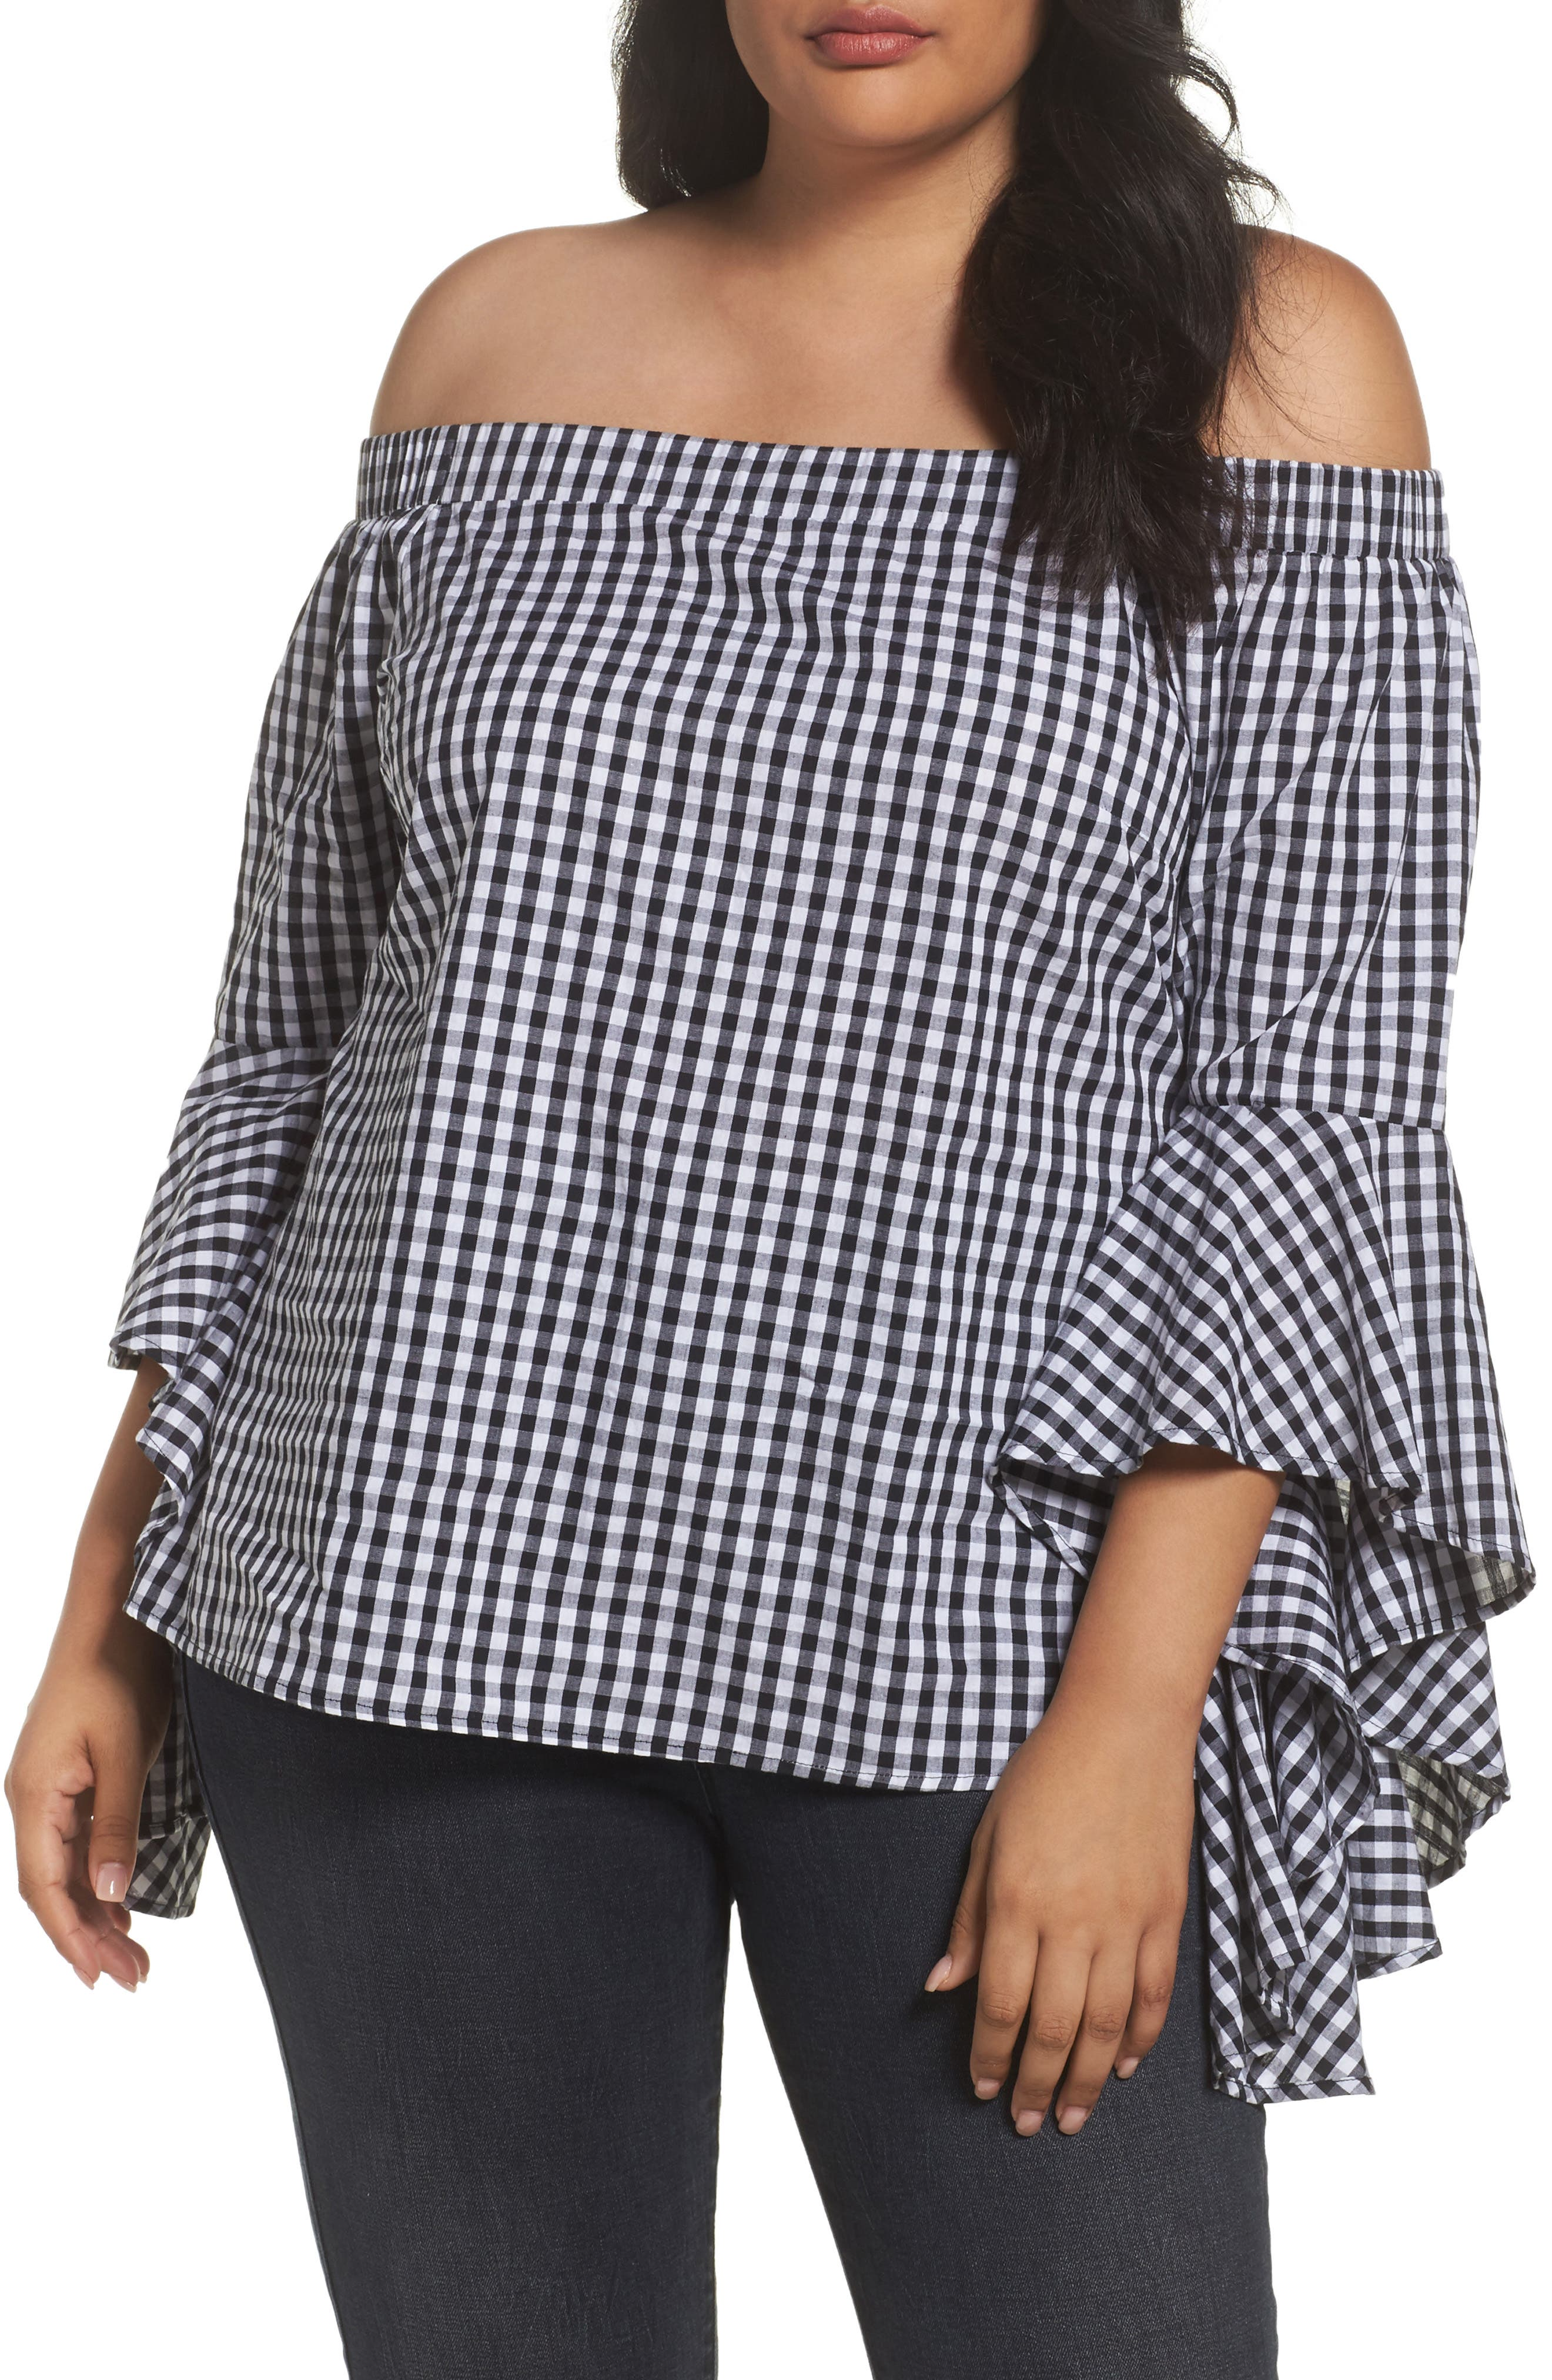 Alternate Image 1 Selected - City Chic Bell Sleeve Off the Shoulder Shirt (Plus Size)